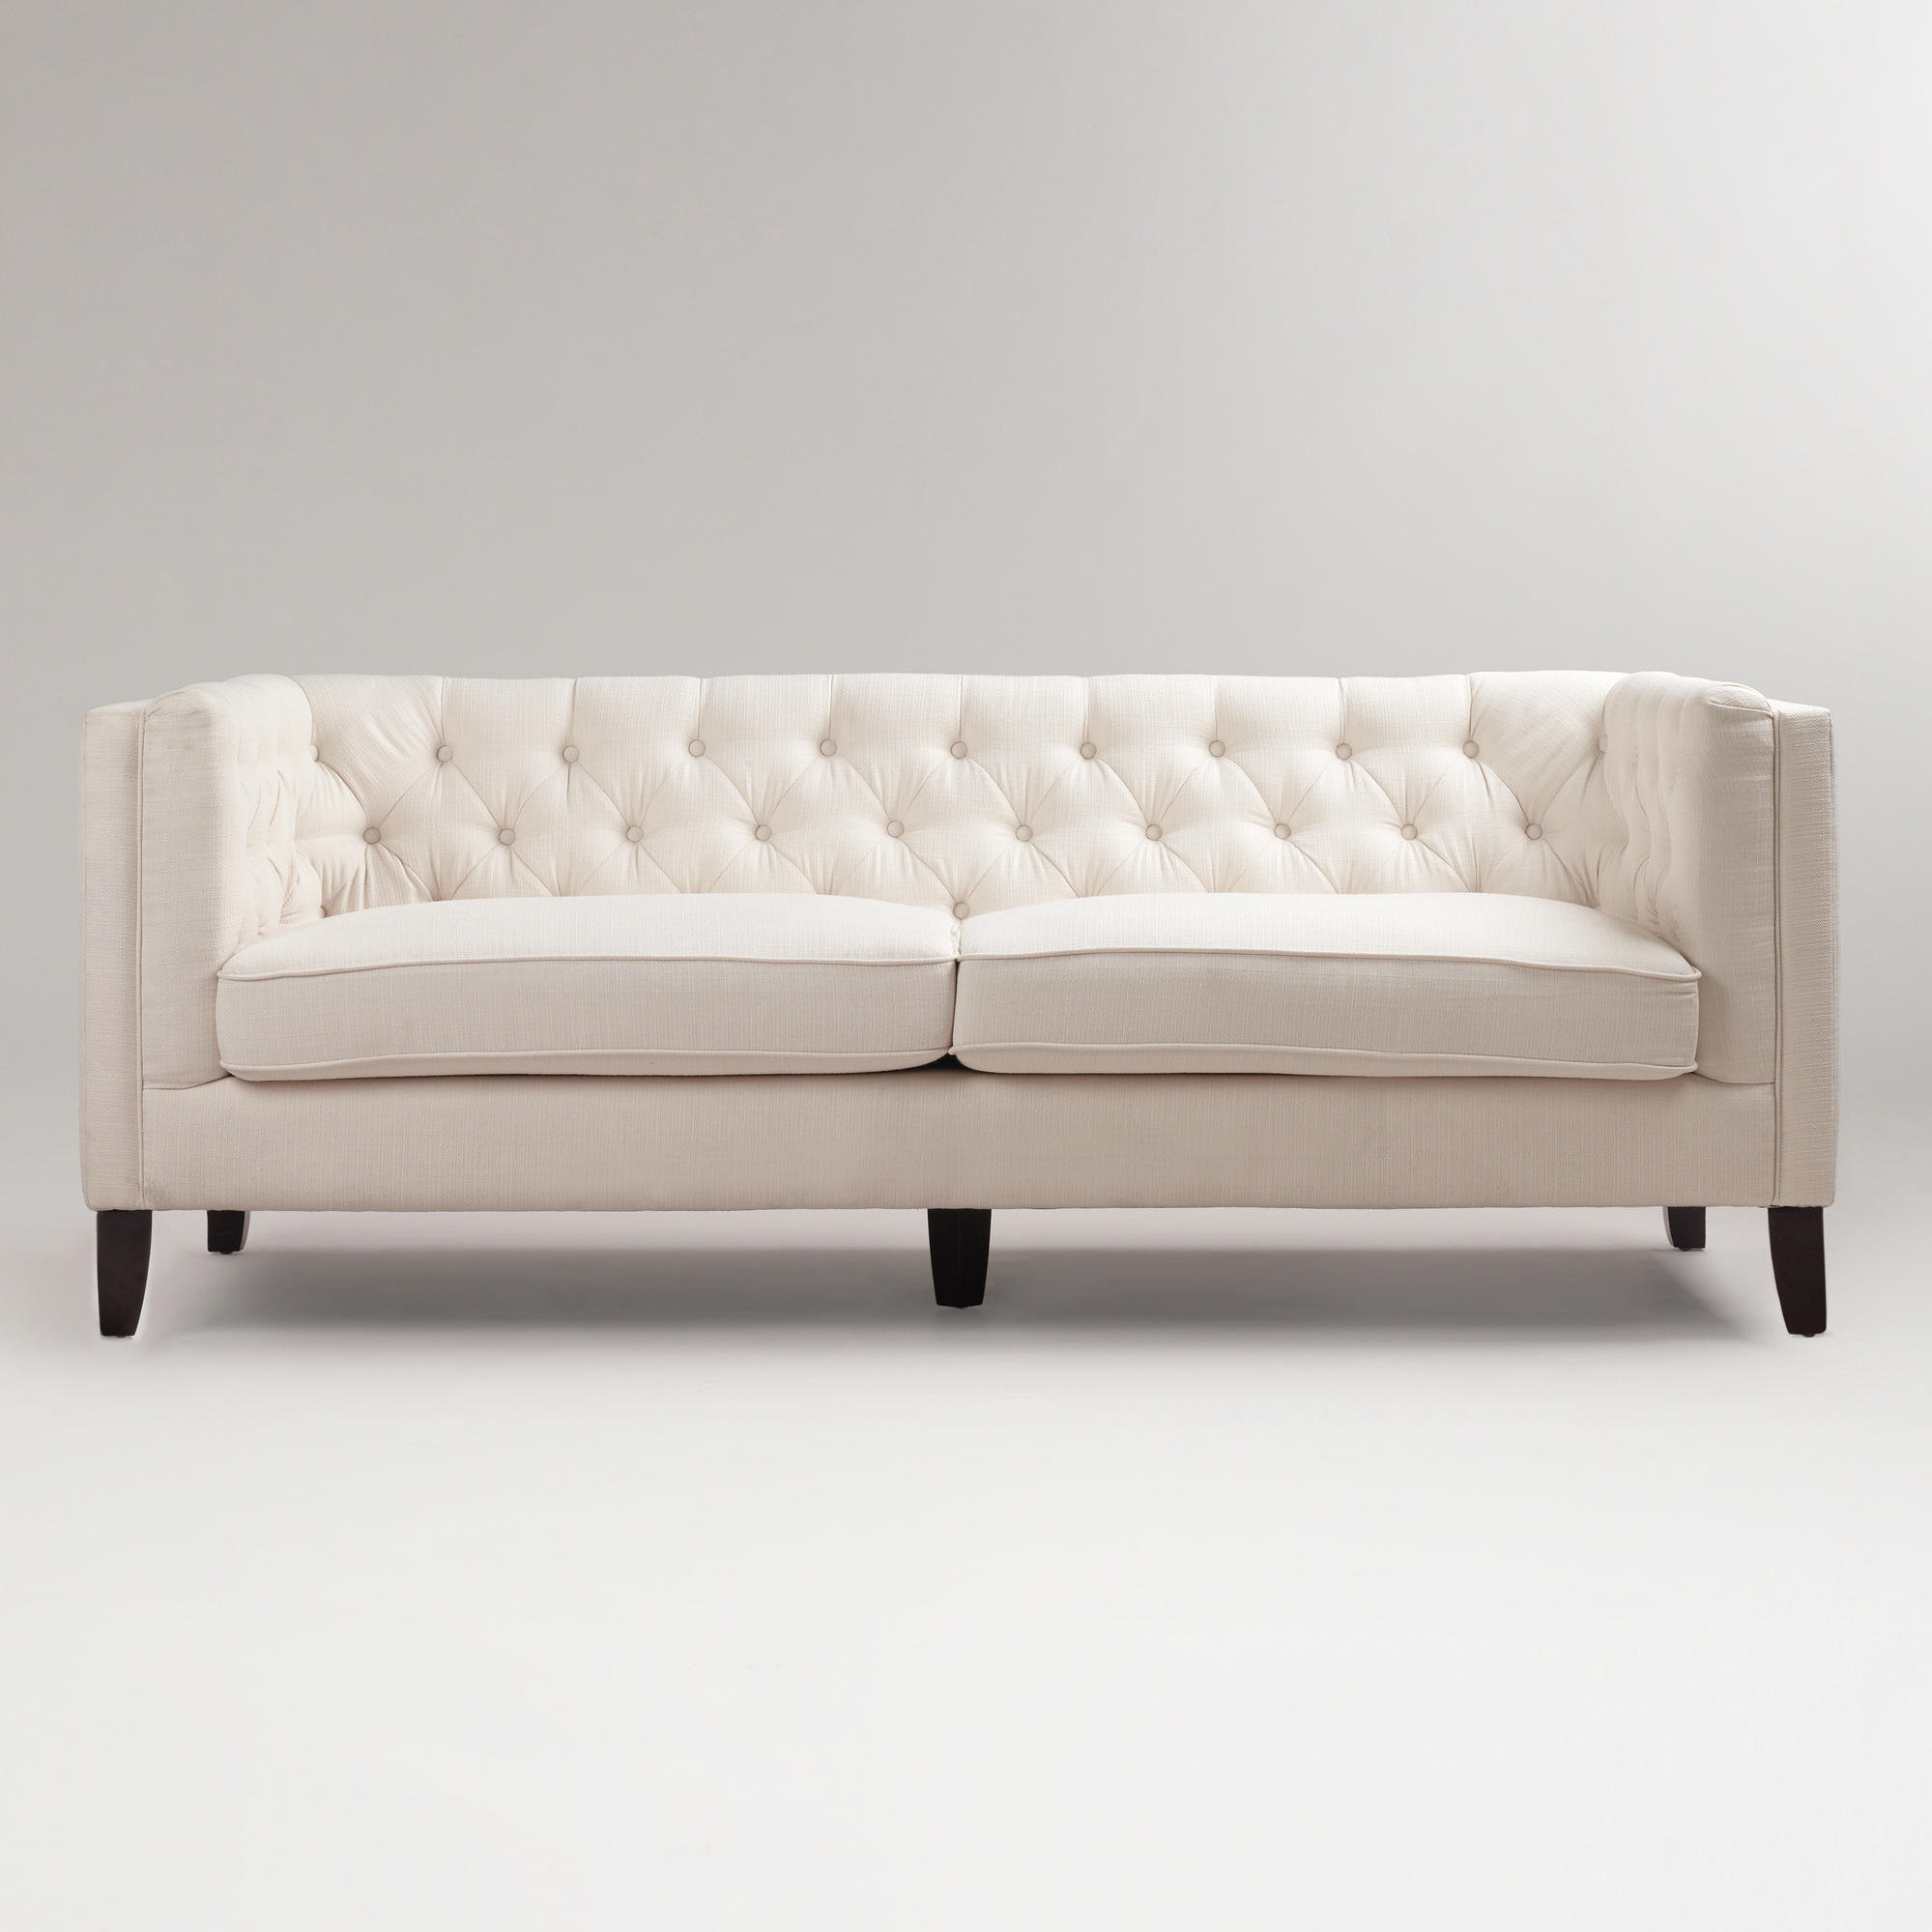 Pin by samual prowell on sofa | Pinterest